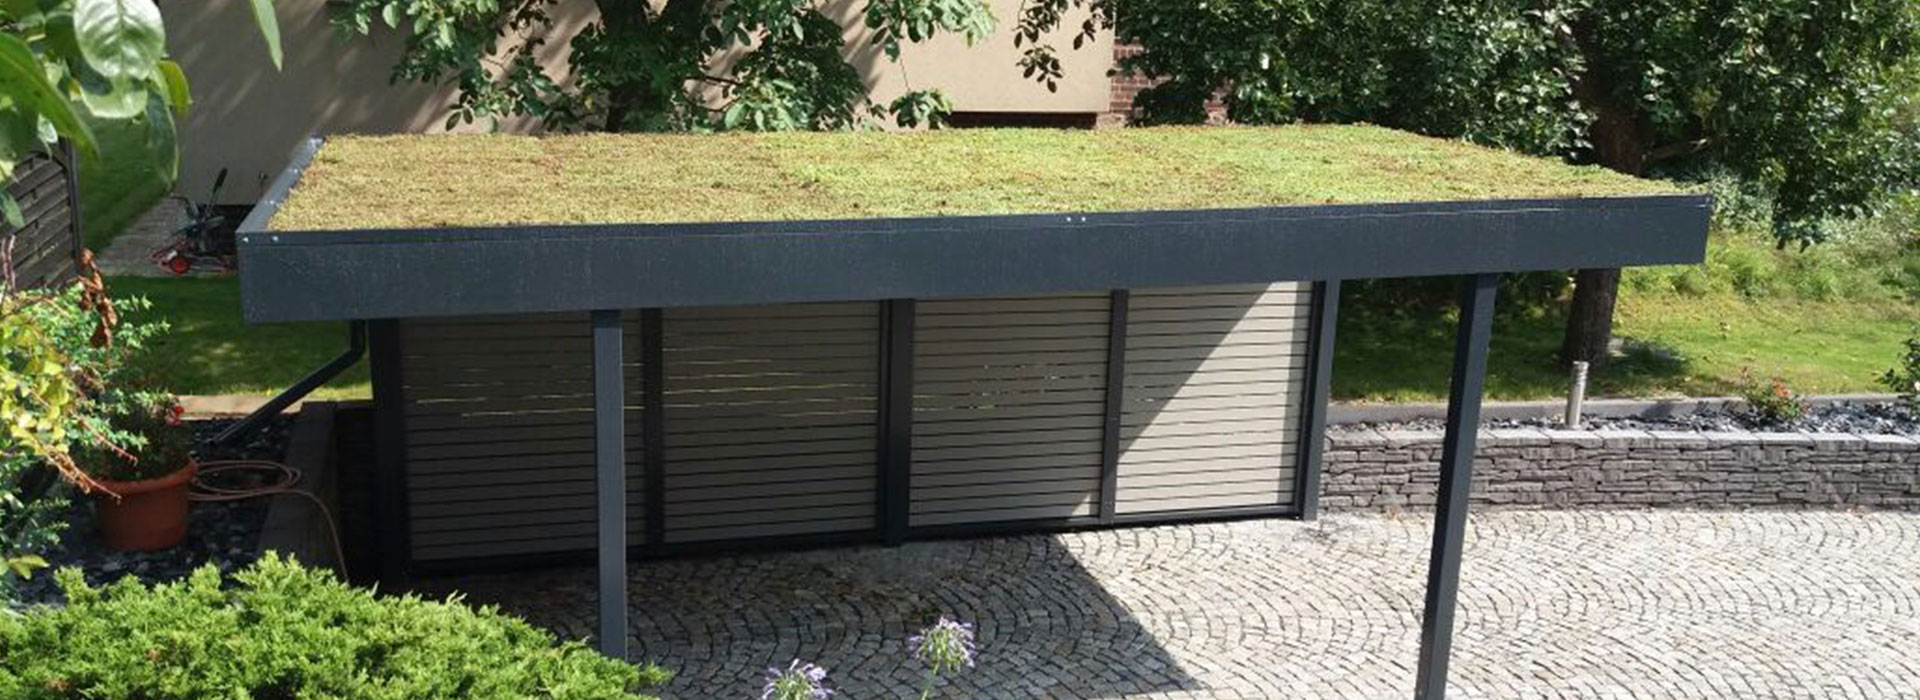 garage bauen lassen fundament fur gartenhaus bauen lassen hauptdesign garage carport bauen. Black Bedroom Furniture Sets. Home Design Ideas